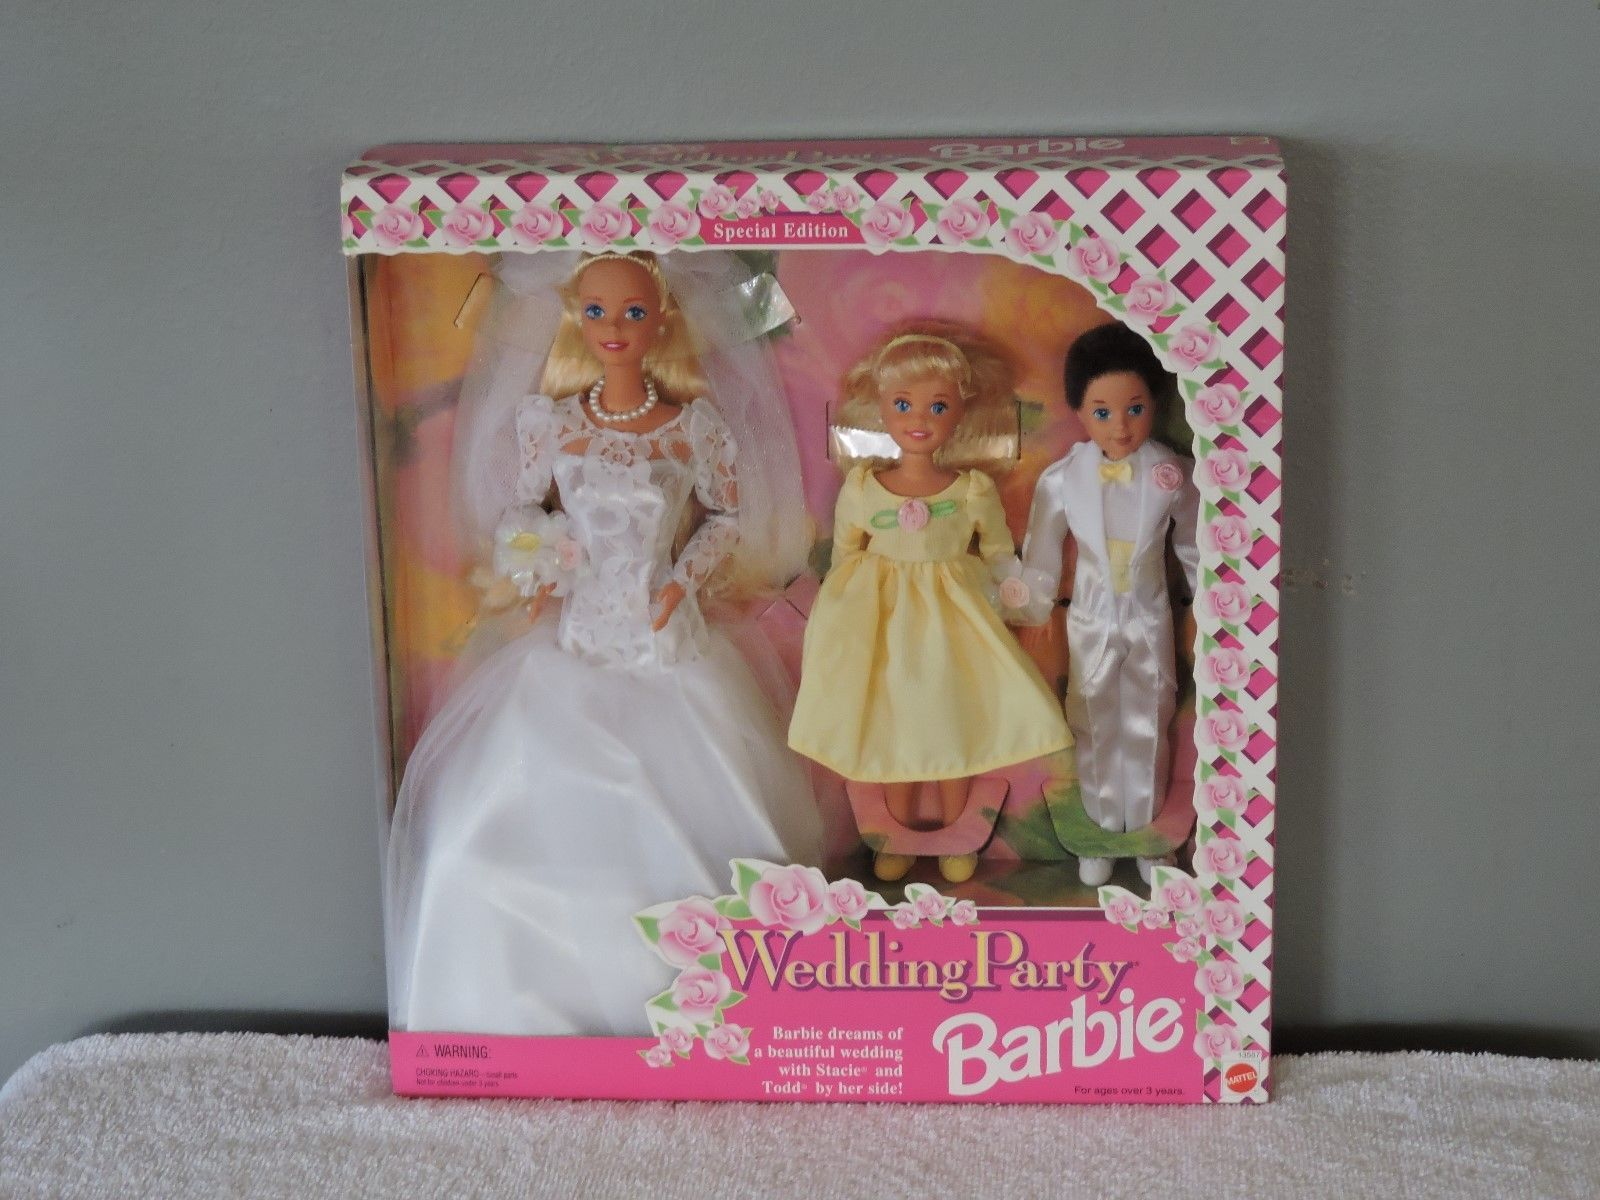 1994 Barbie Wedding Party Giftset with Stacie & Todd Dolls